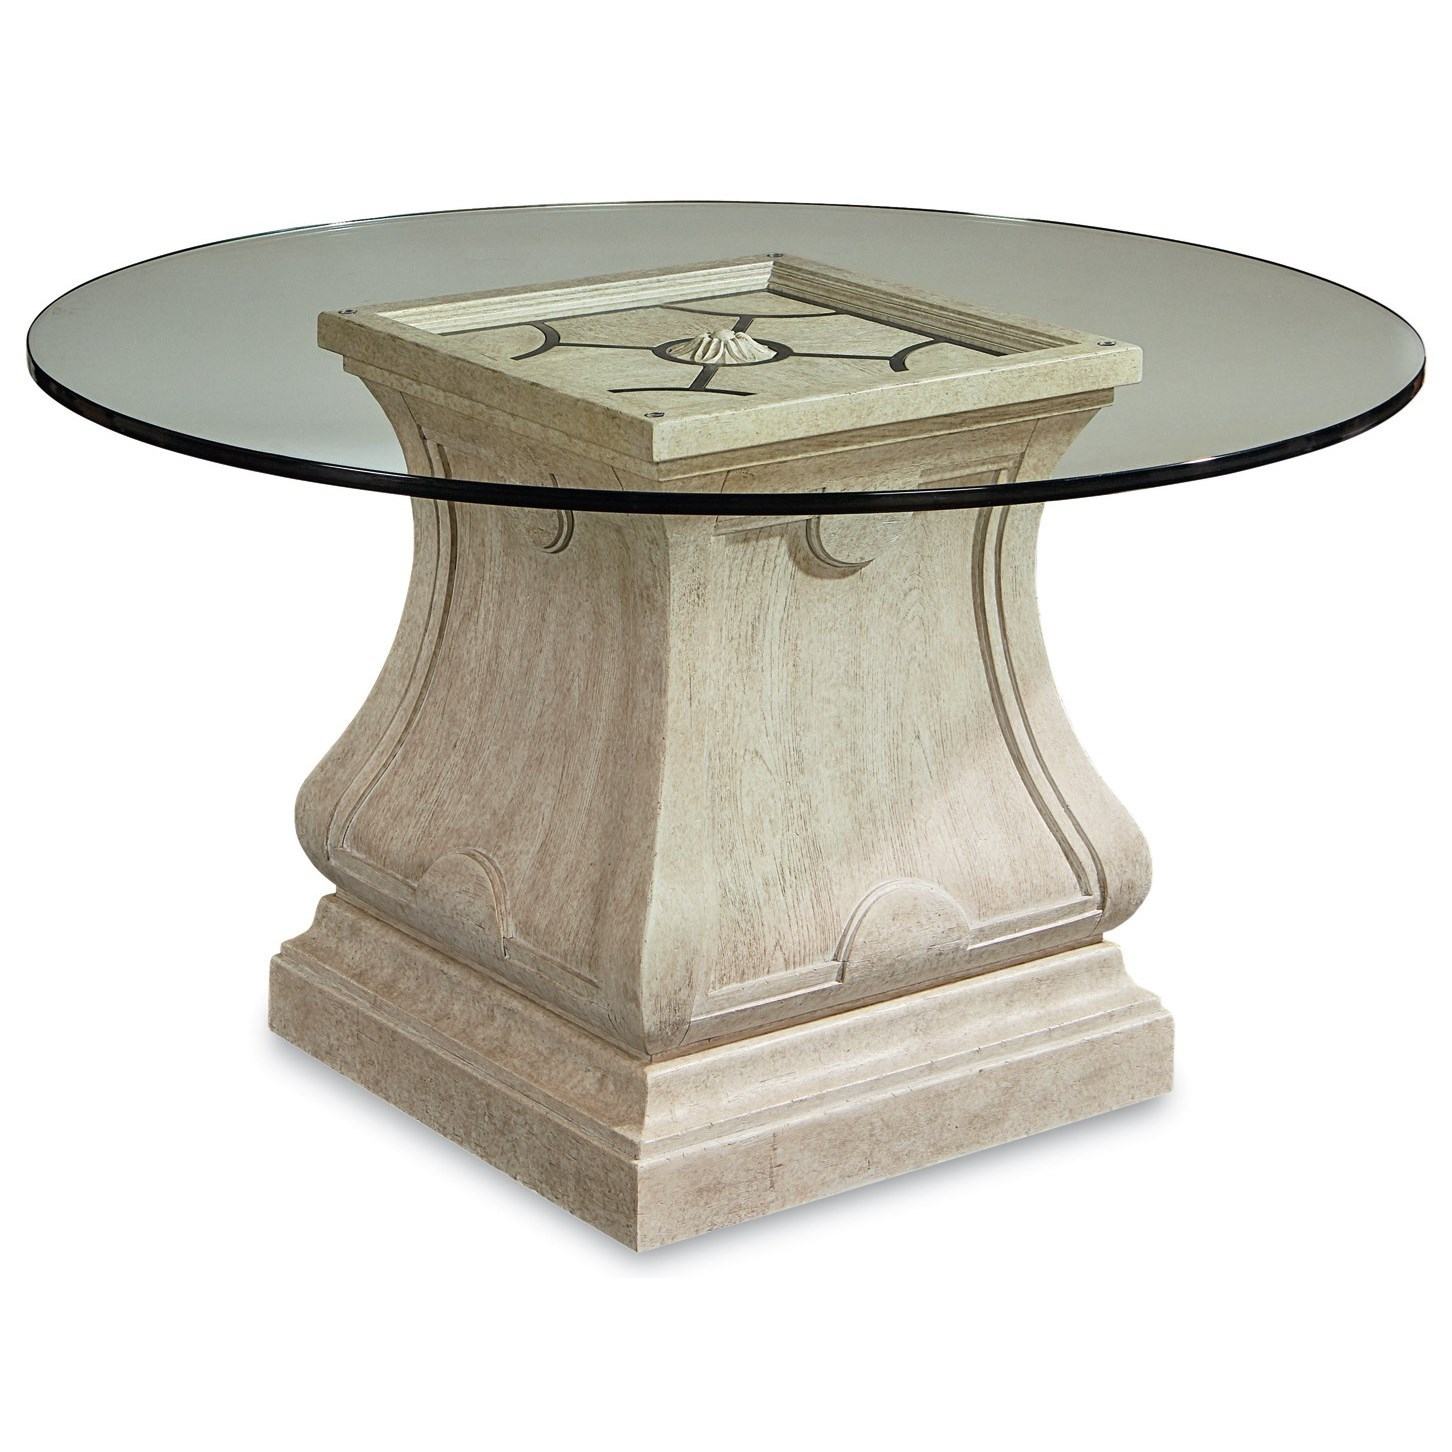 """Arch Salvage Leoni Round Dining Table with 54"""" Glass Top  by A.R.T. Furniture Inc at Baer's Furniture"""